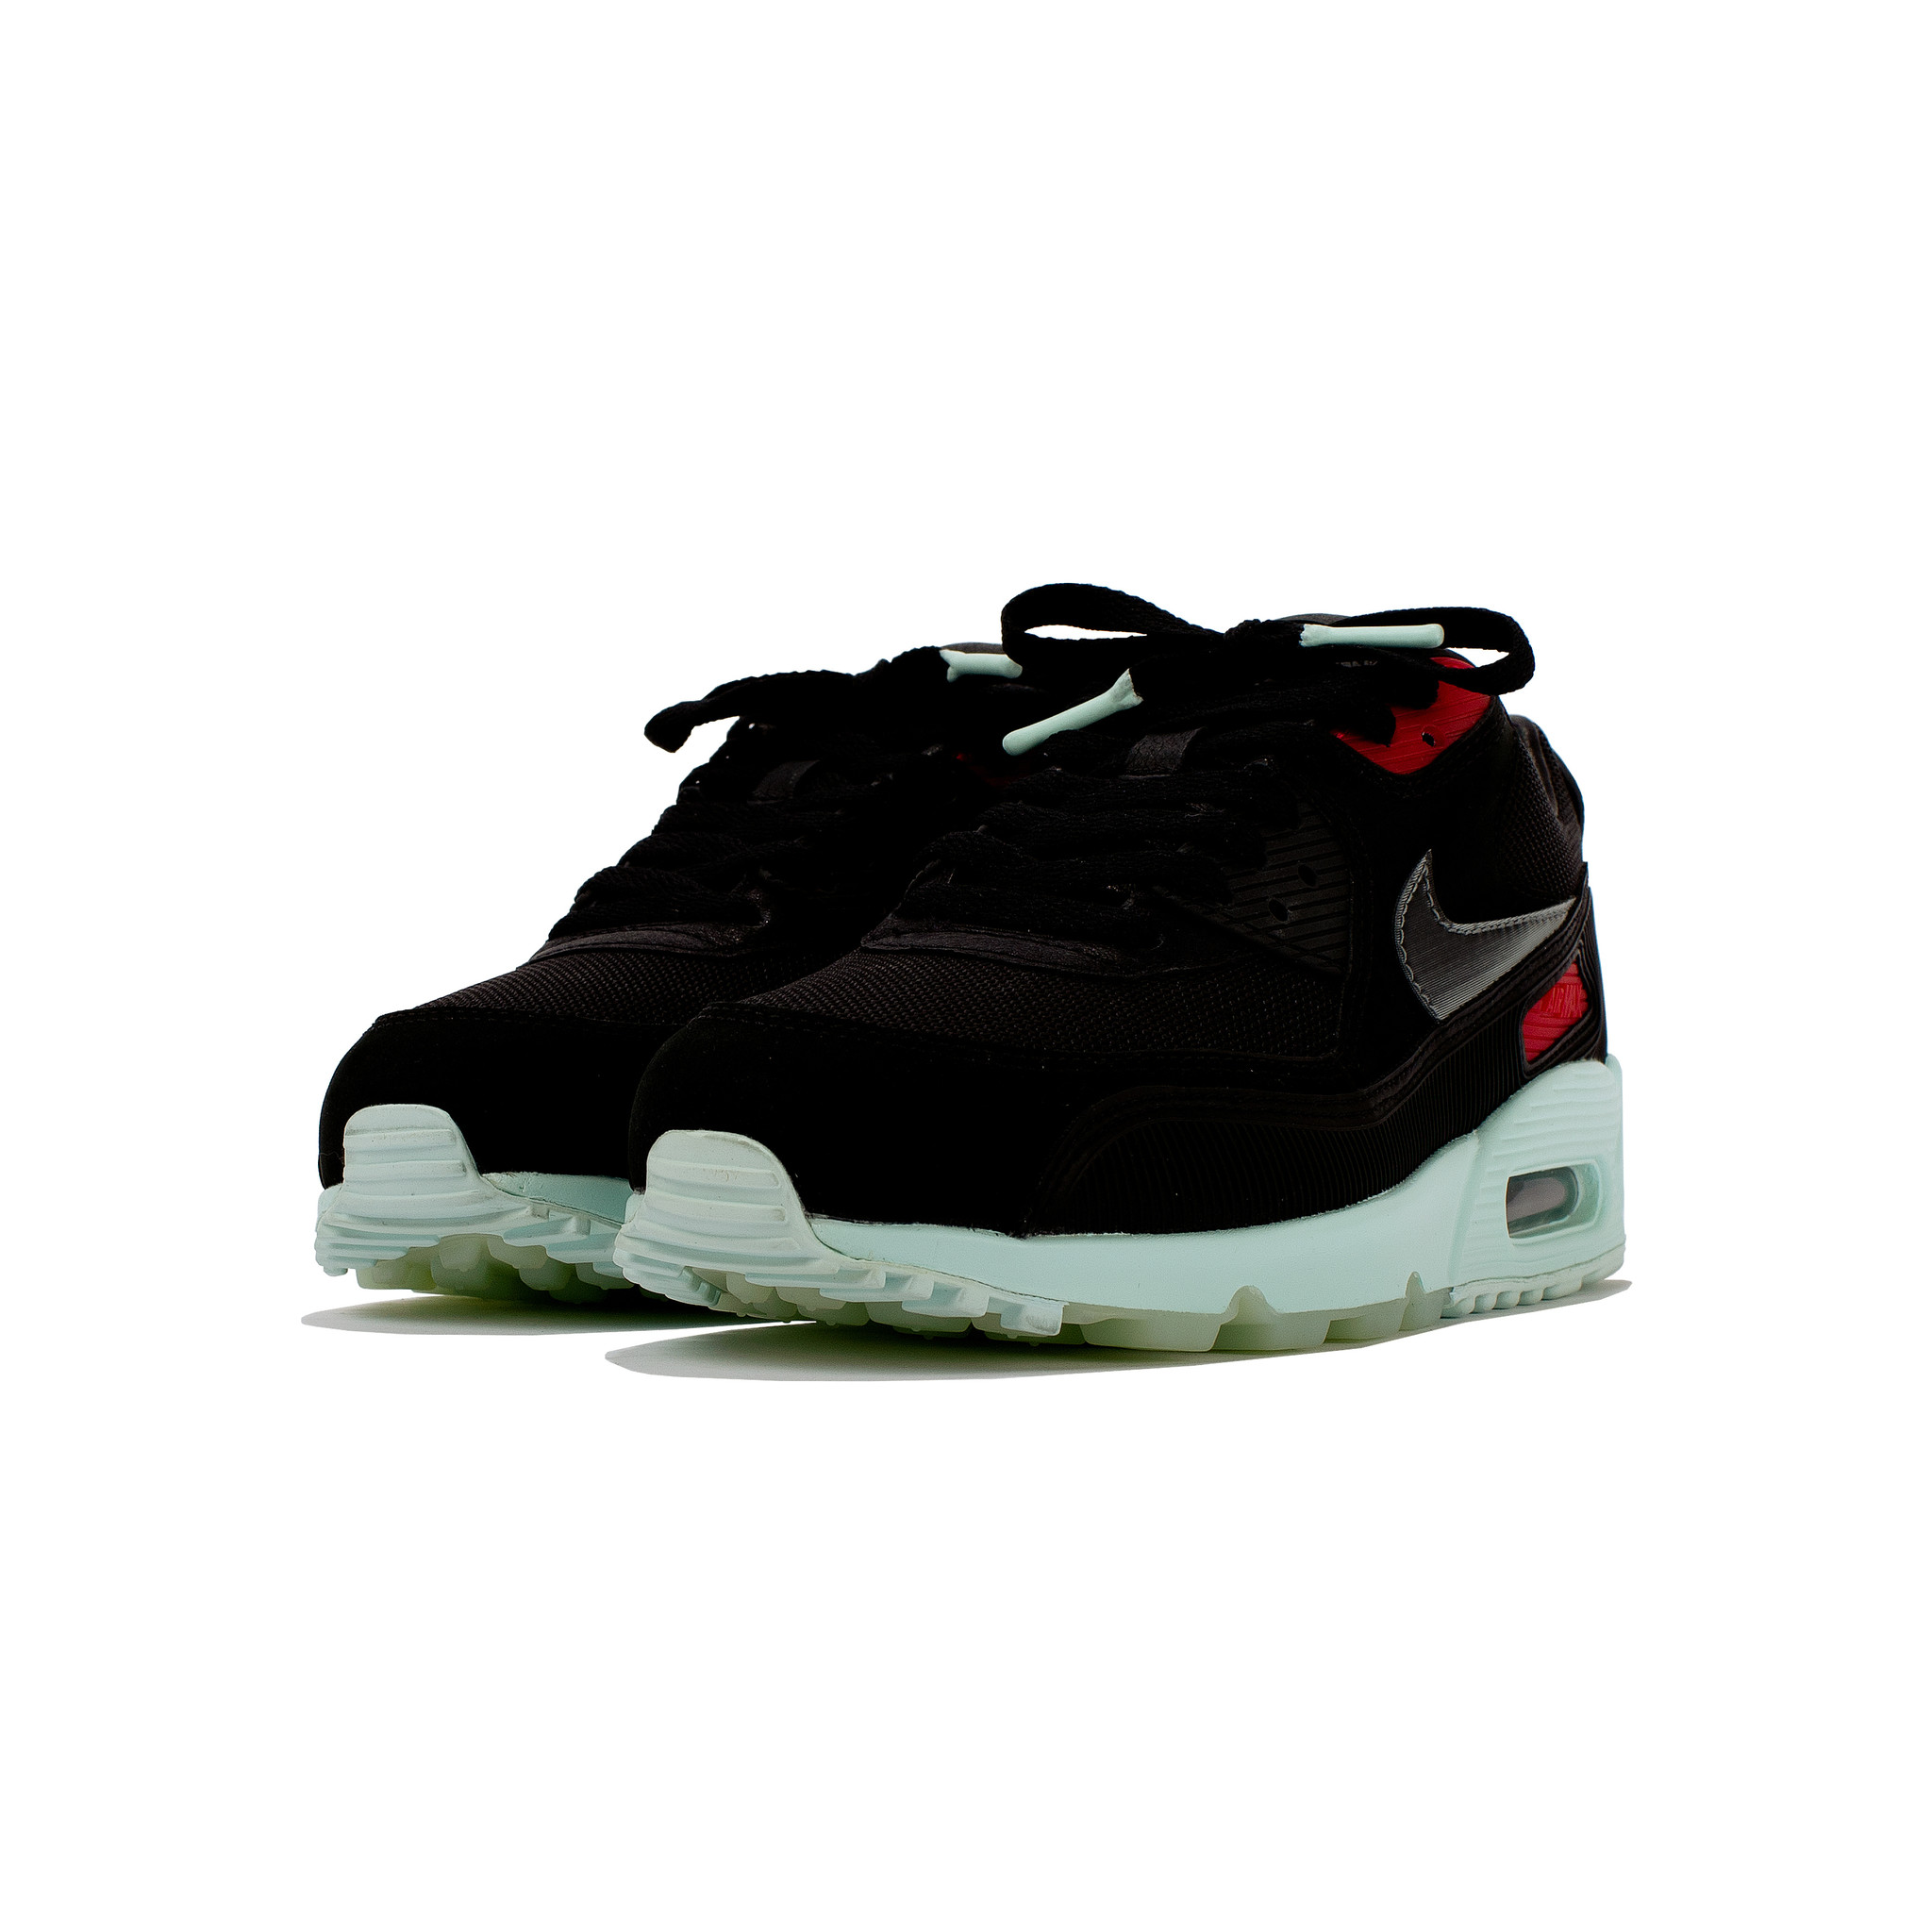 design intemporel 39576 57164 NIKE AIR MAX 90 PREMIUM CK0902 001